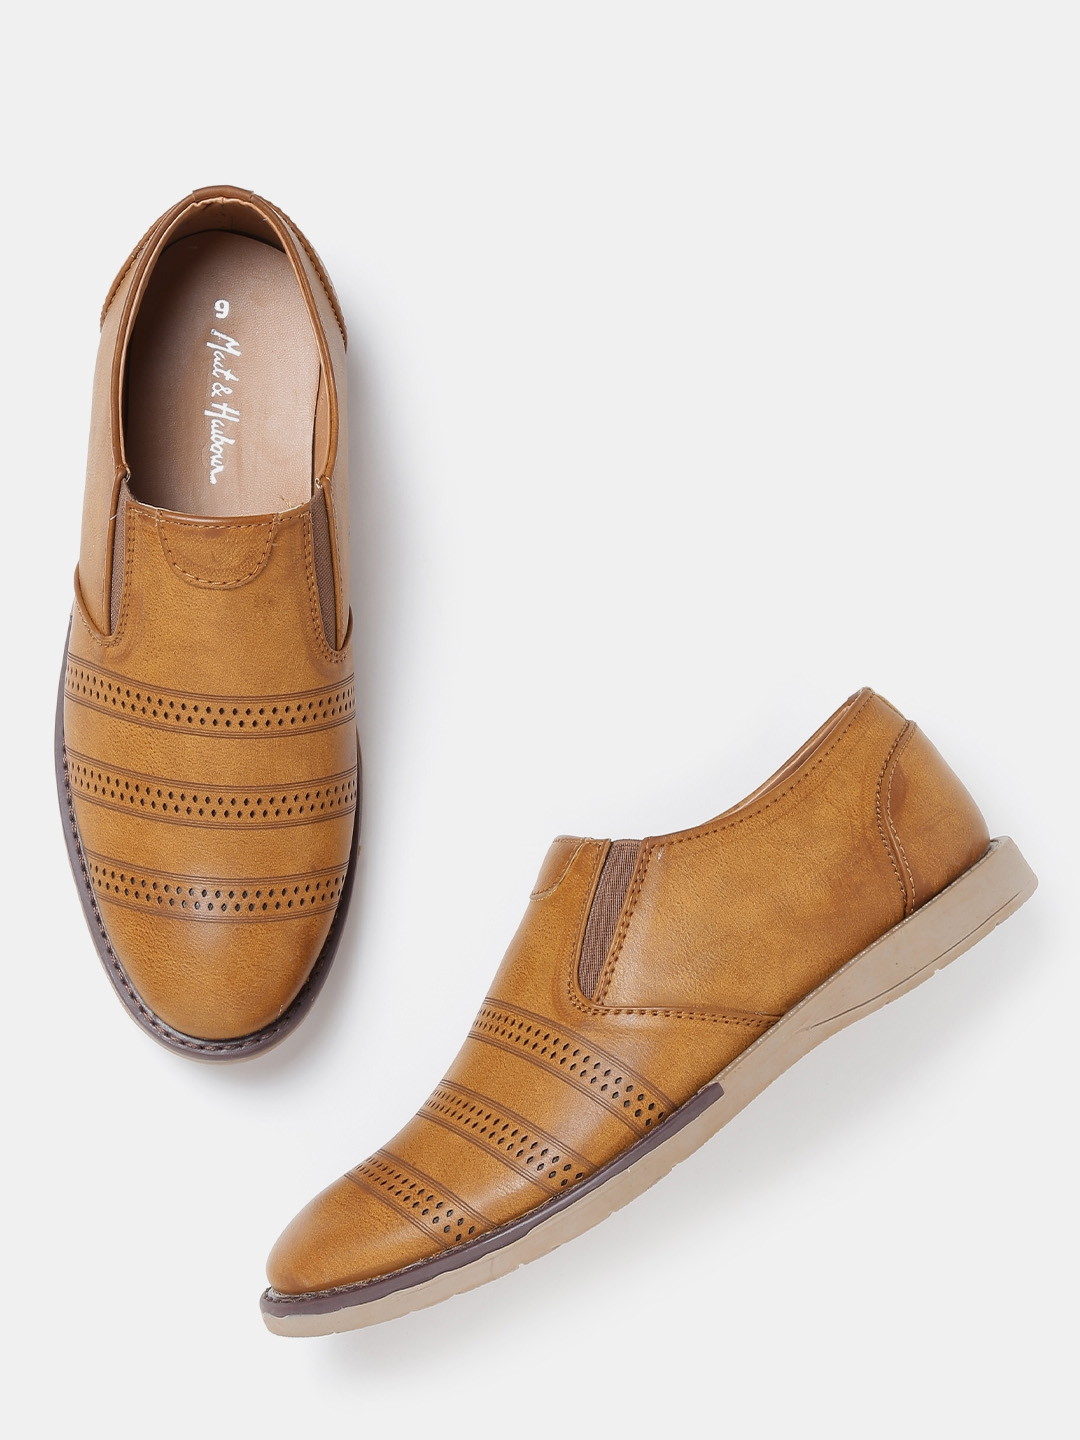 7a3587263d7 Buy Mast   Harbour Men Tan Brown Solid Loafers - Casual Shoes for ...